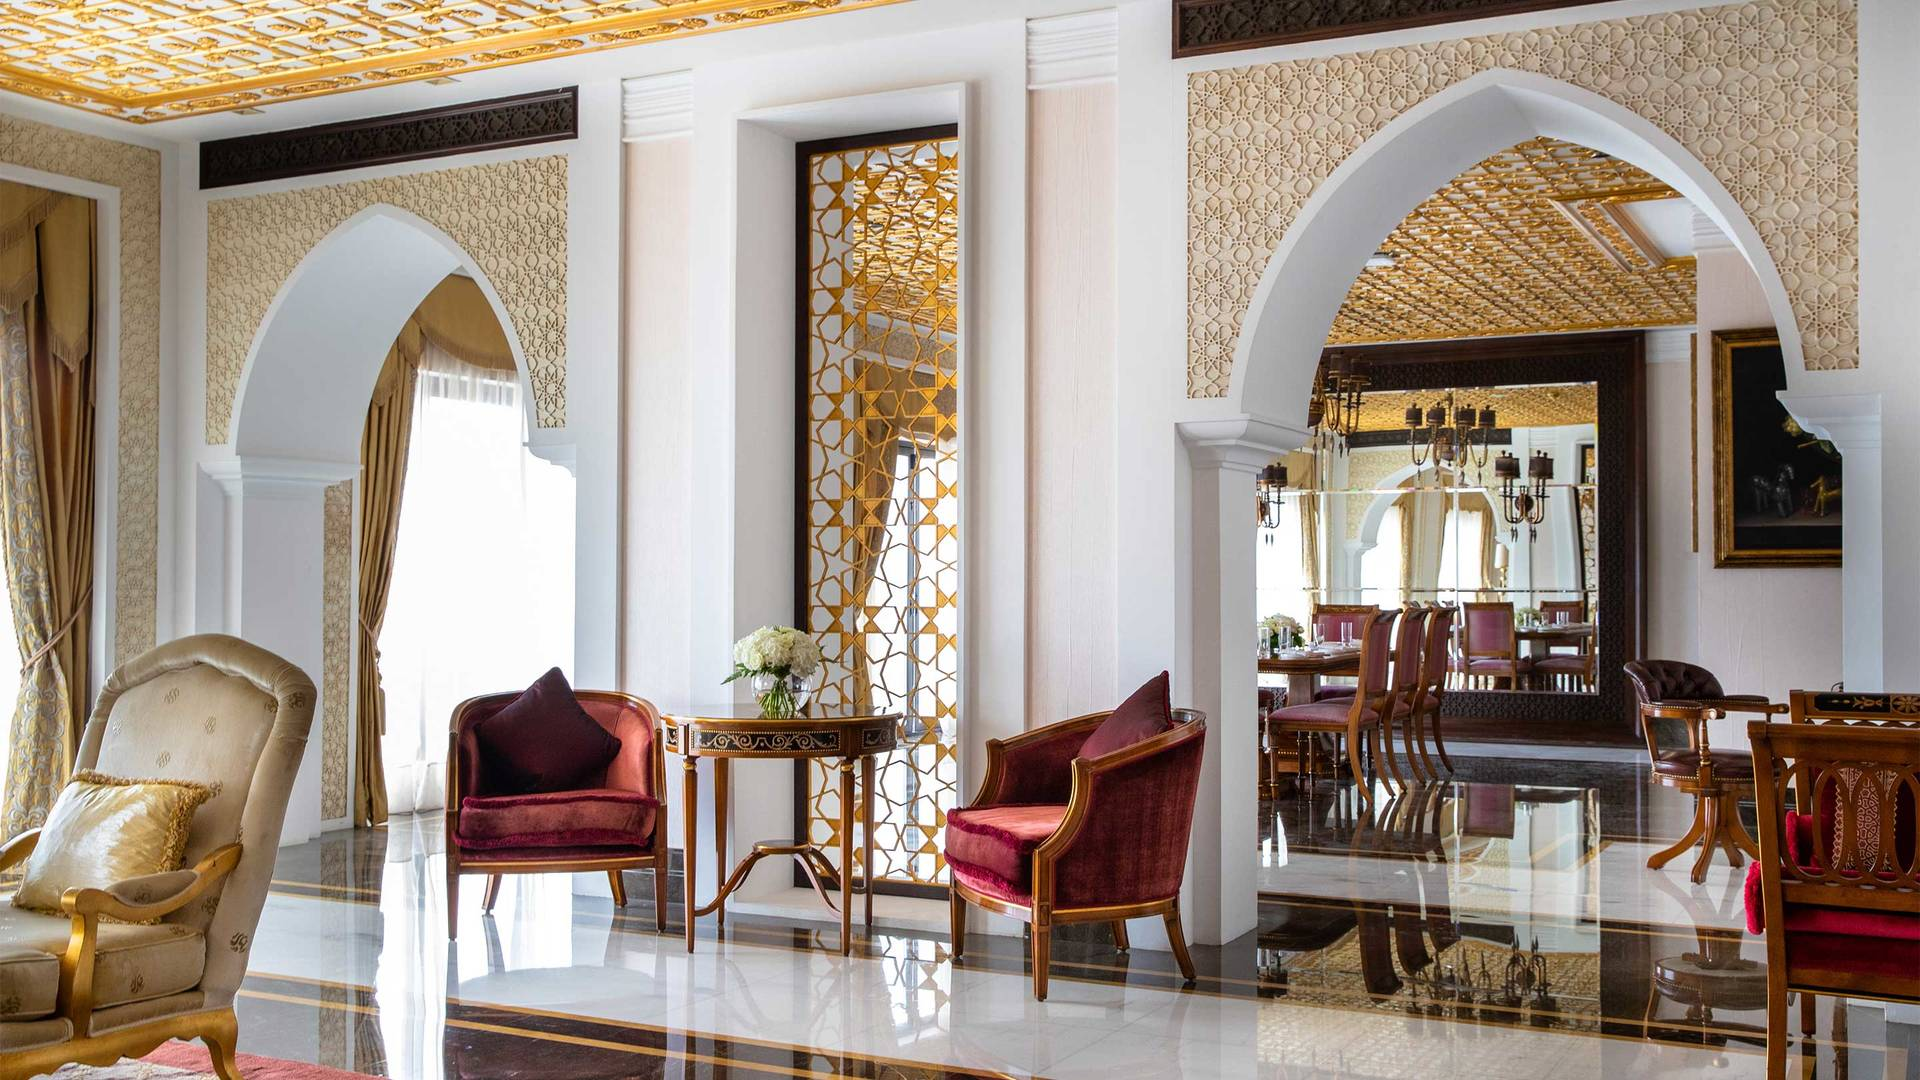 16-9_Jumeirah-Zabeel-Saray---Grand-Imperial-Suite---Lounge-and-Dining-Room